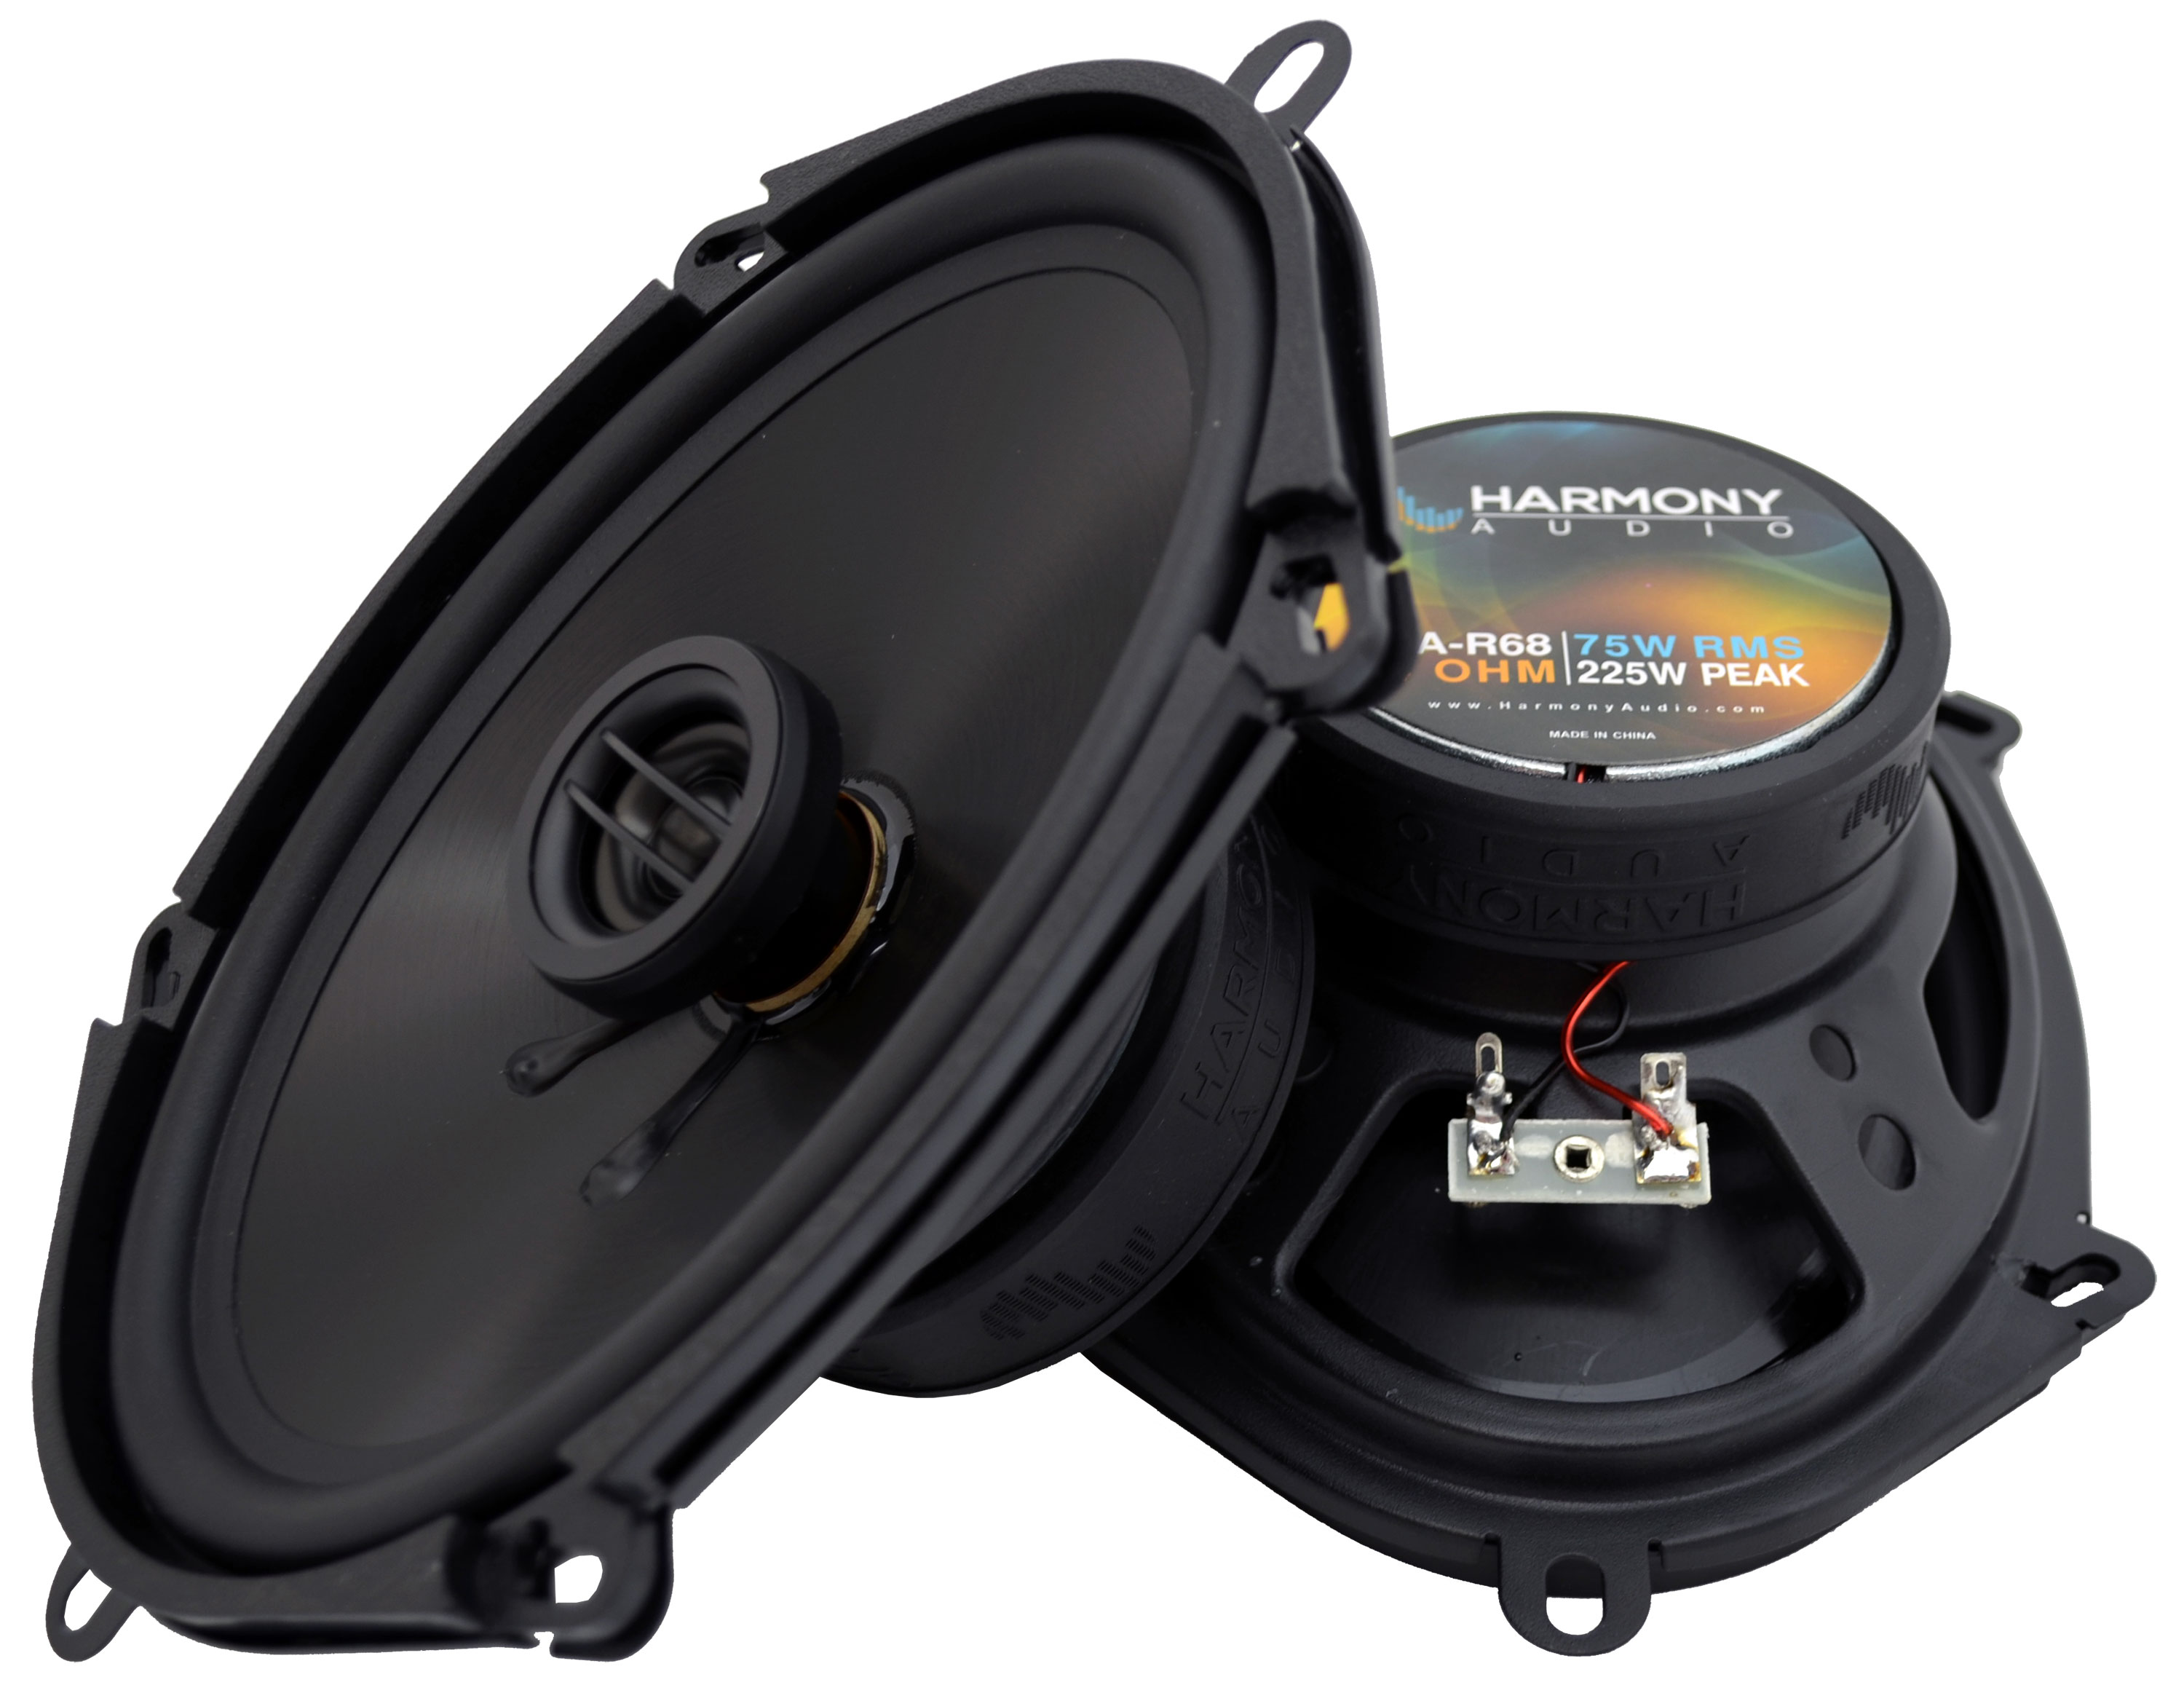 Fits BMW M6 1987-1988 Rear Deck Replacement Speaker Harmony HA-R68 Speakers New